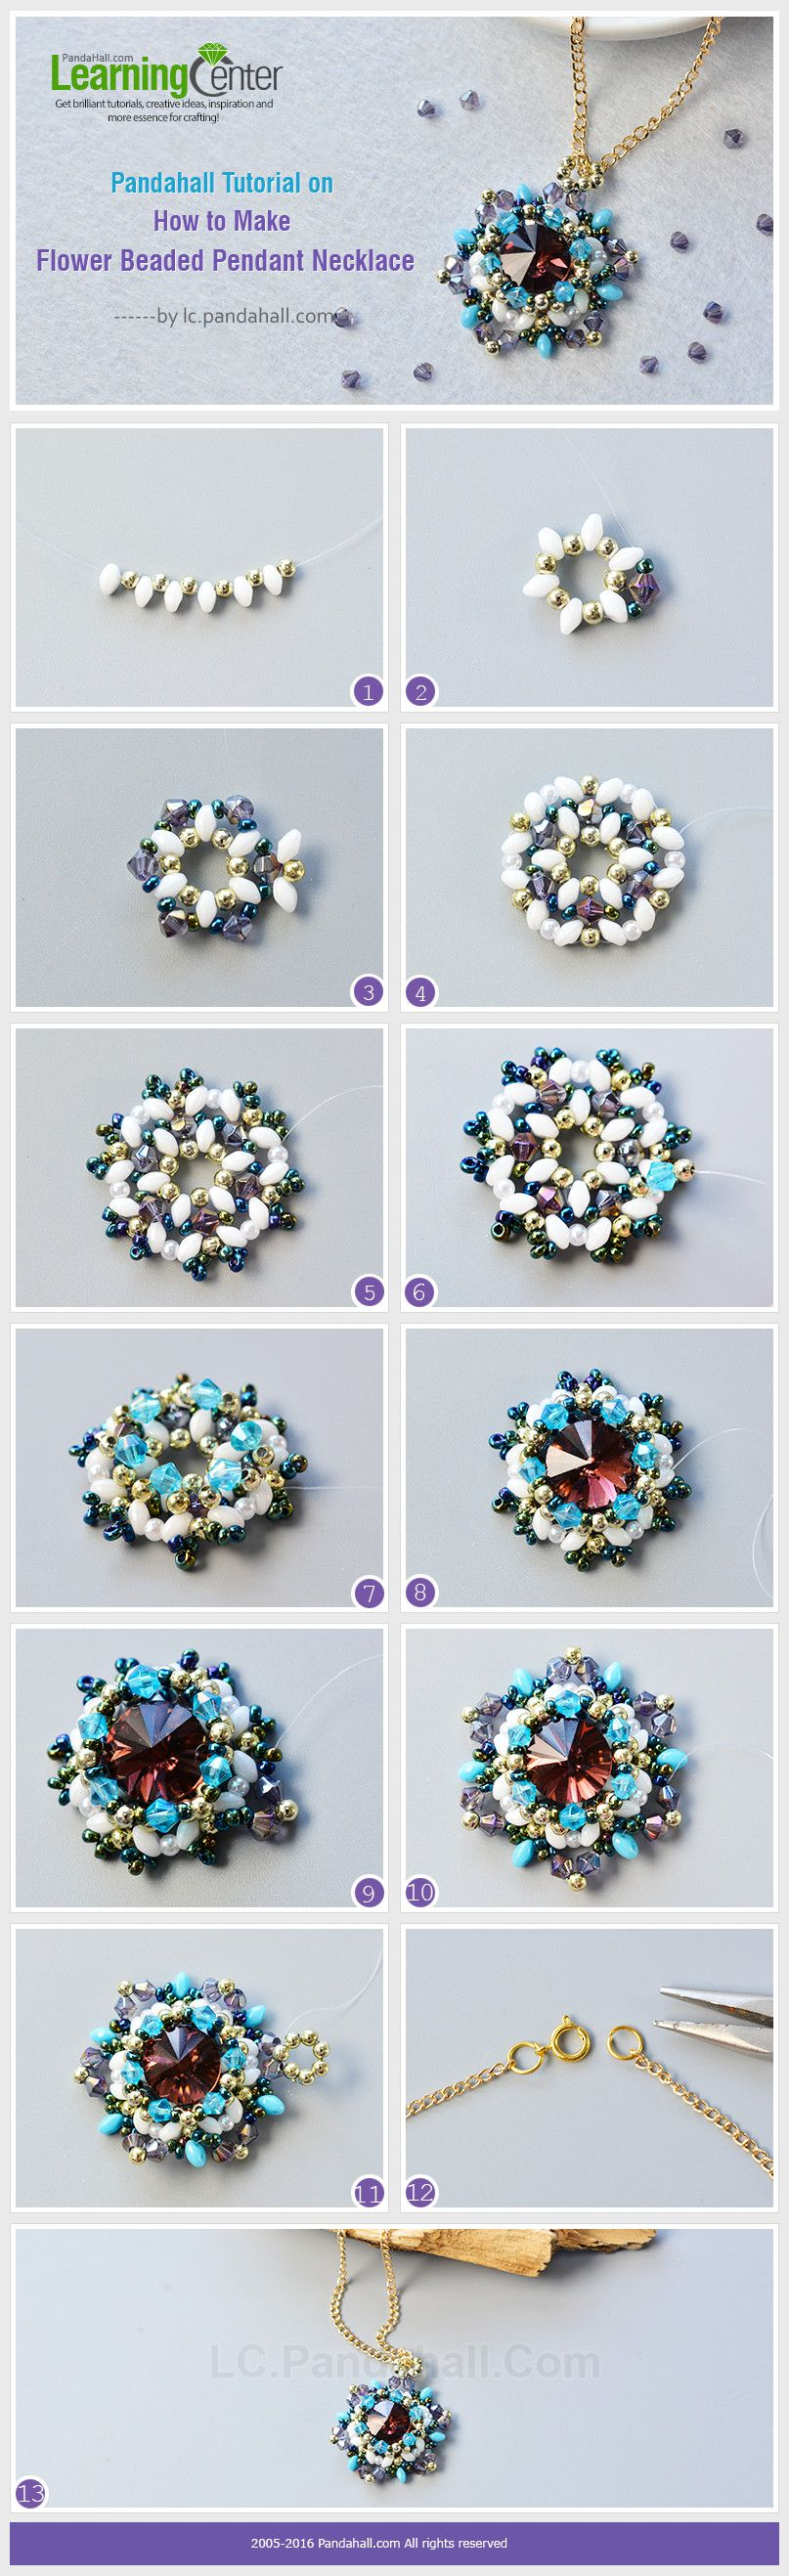 Pandahall Tutorial on How to Make Flower Beaded Pendant Necklace ...